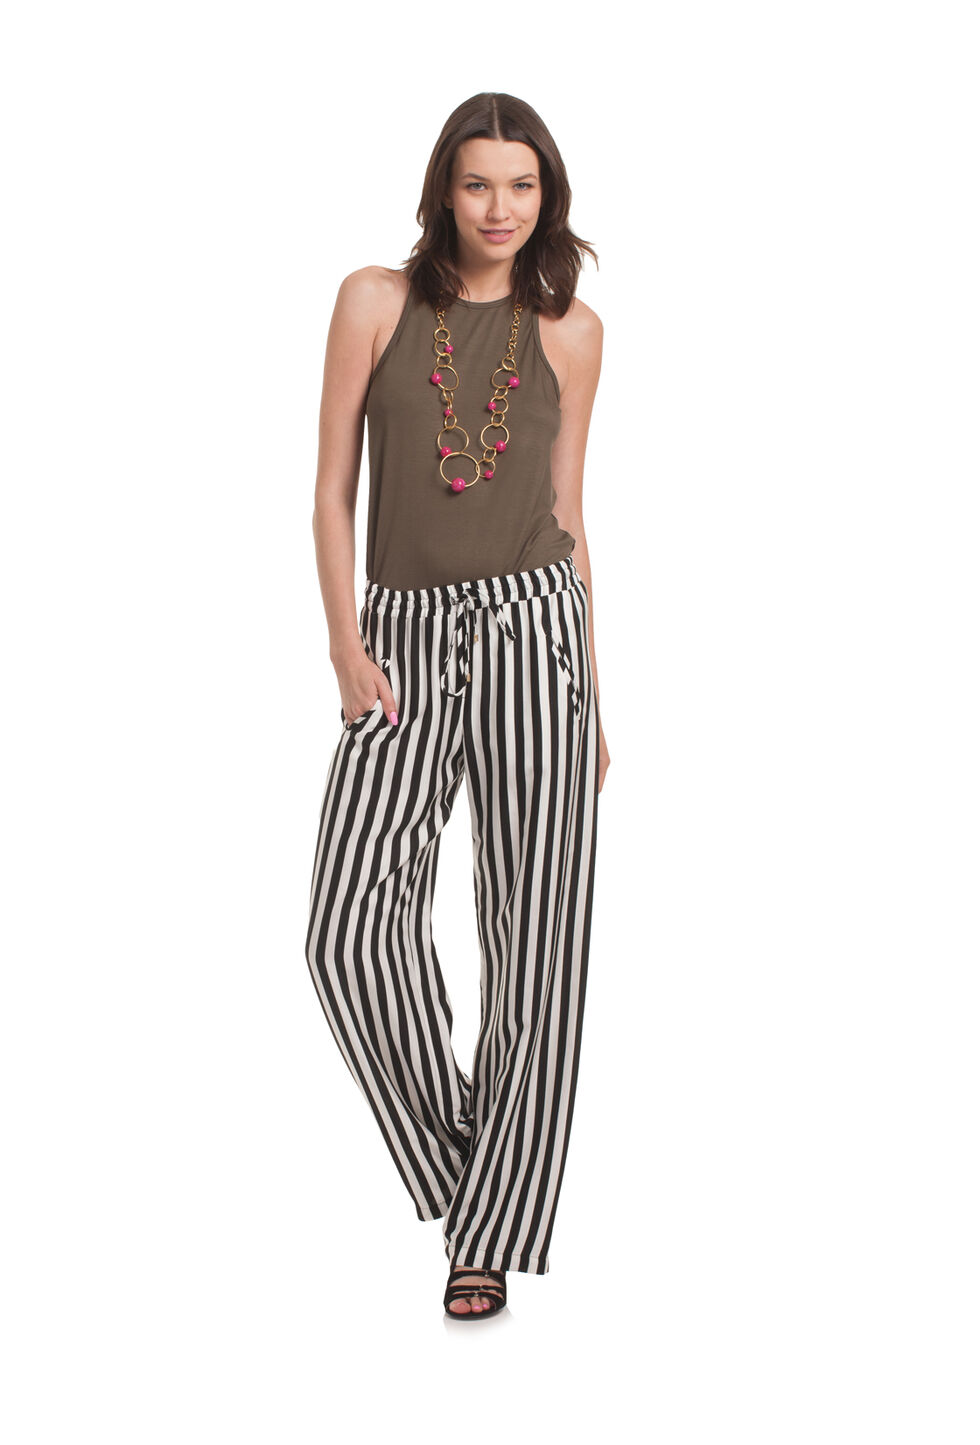 Trina Turk Adonia Pant - Black/White - Size Fit Guide